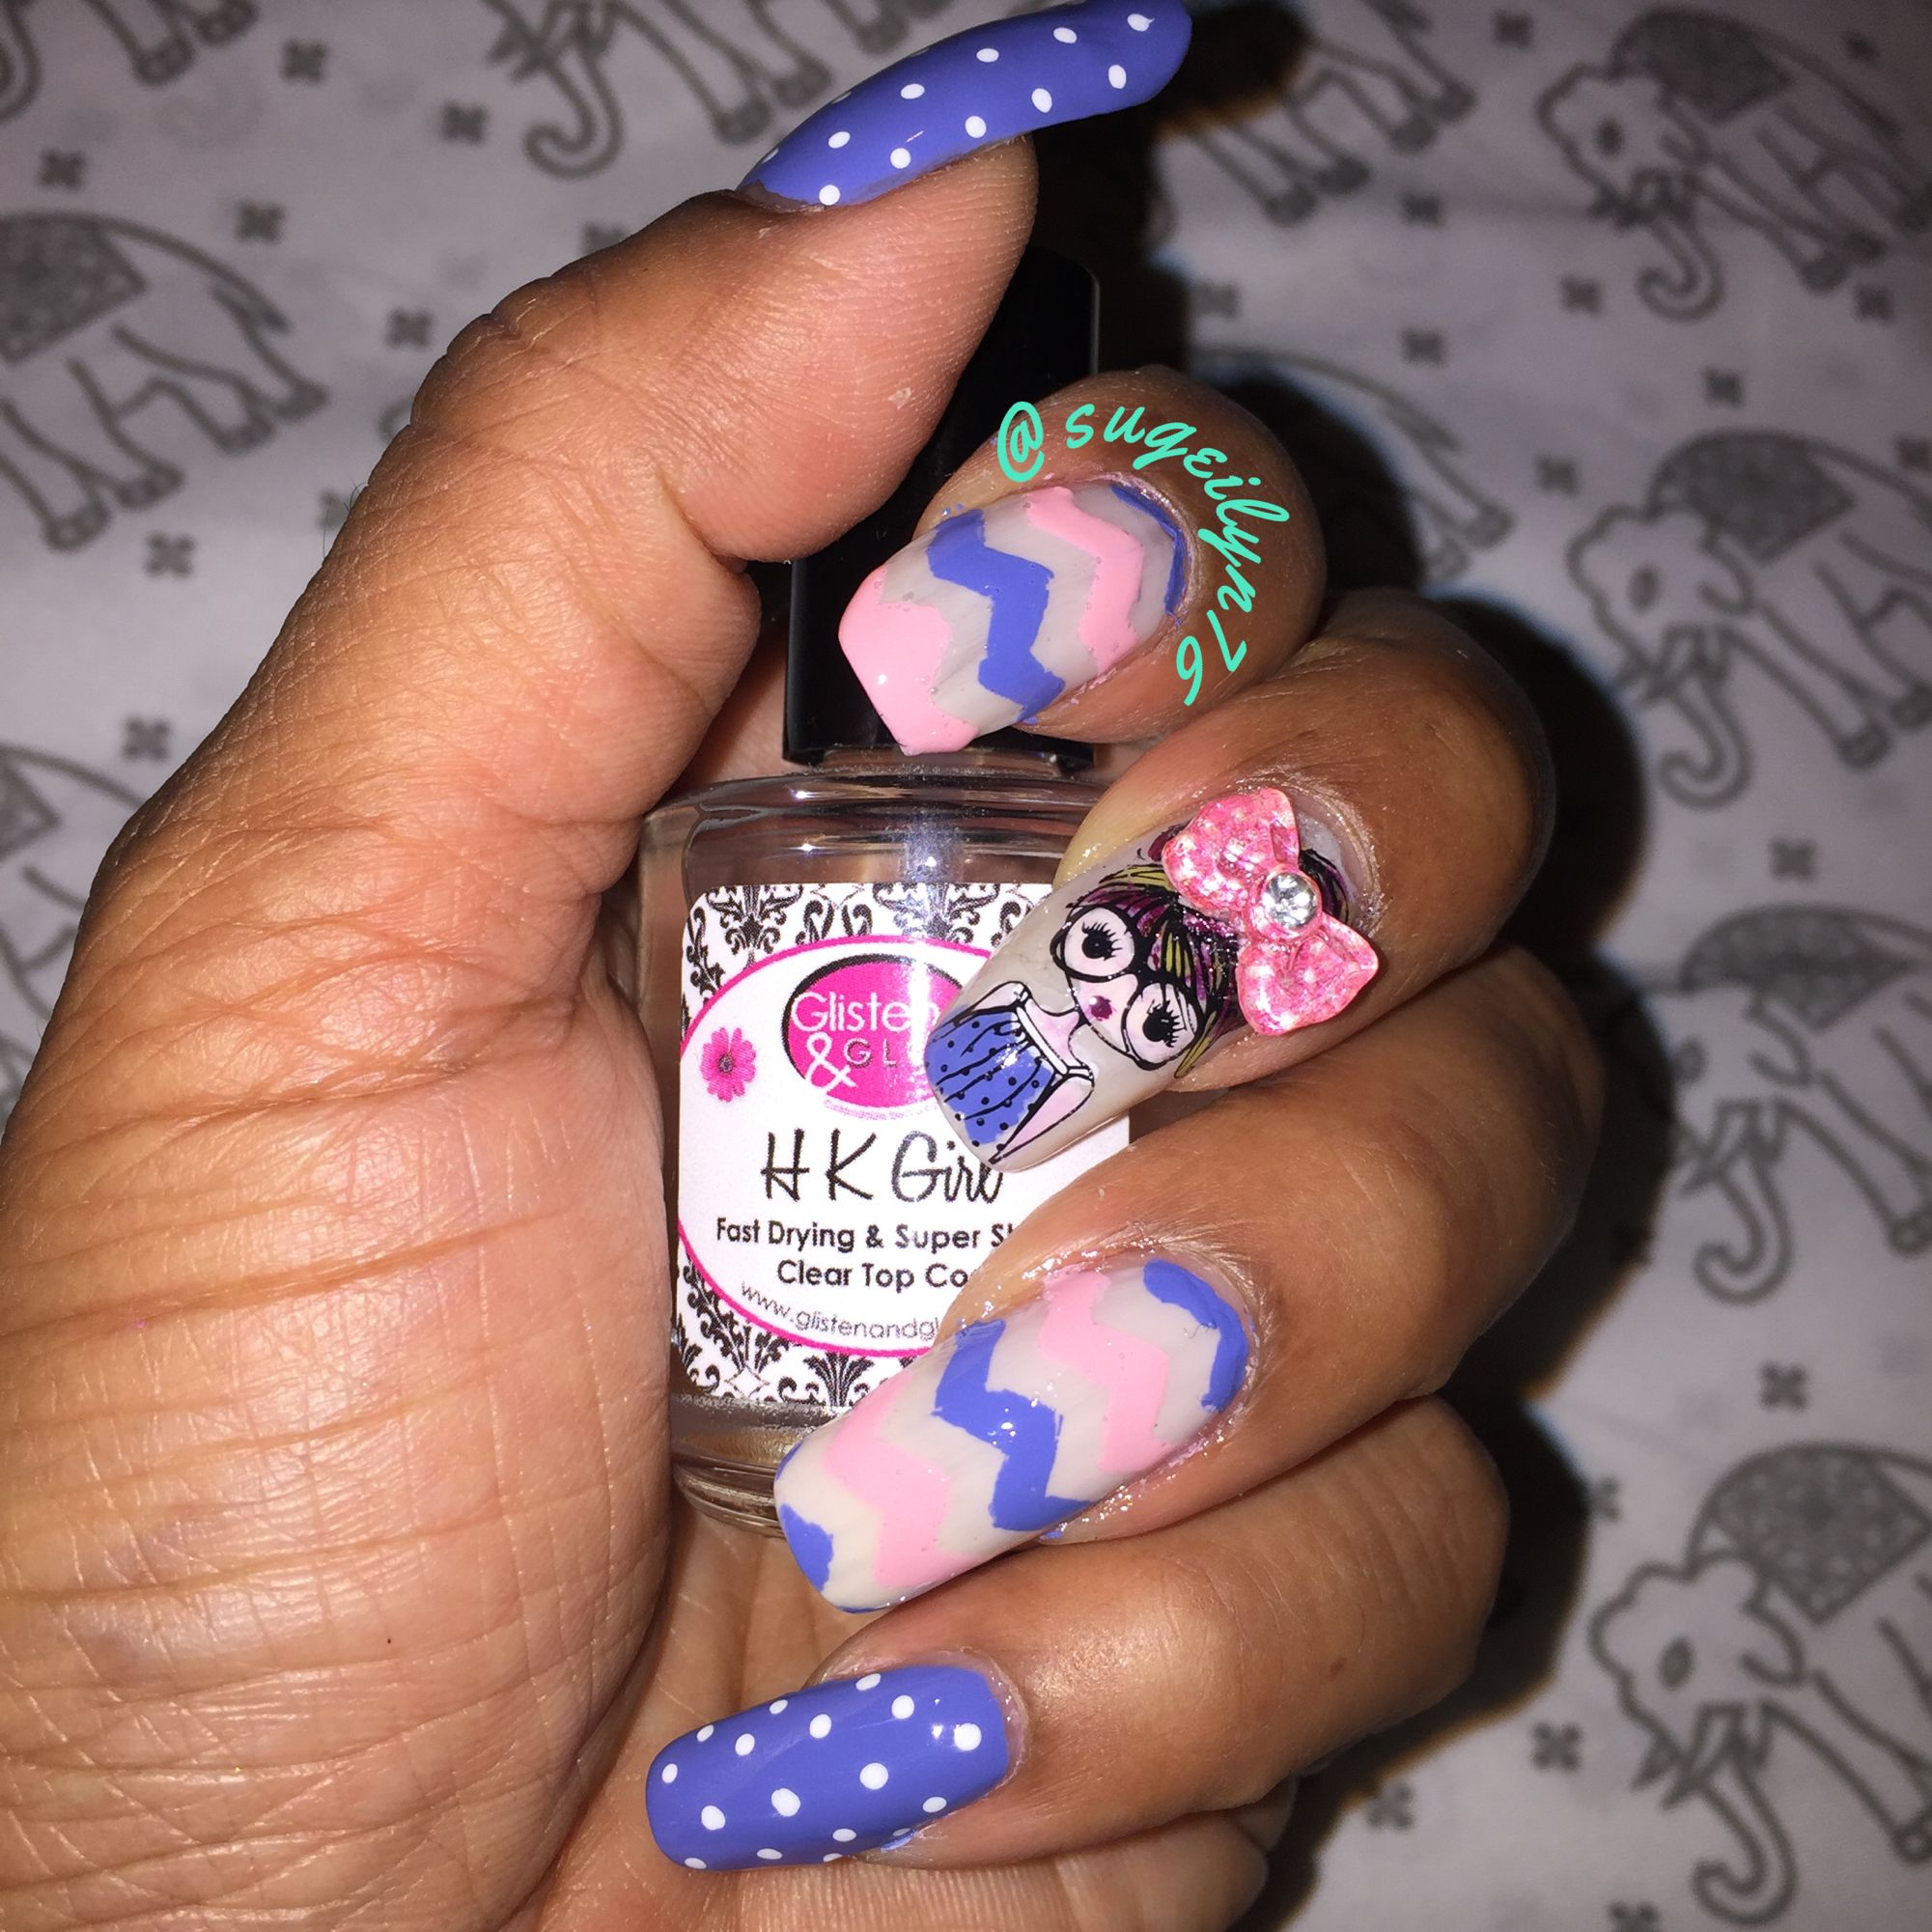 Pin by Sugeily Nuñez on Nails   Pinterest